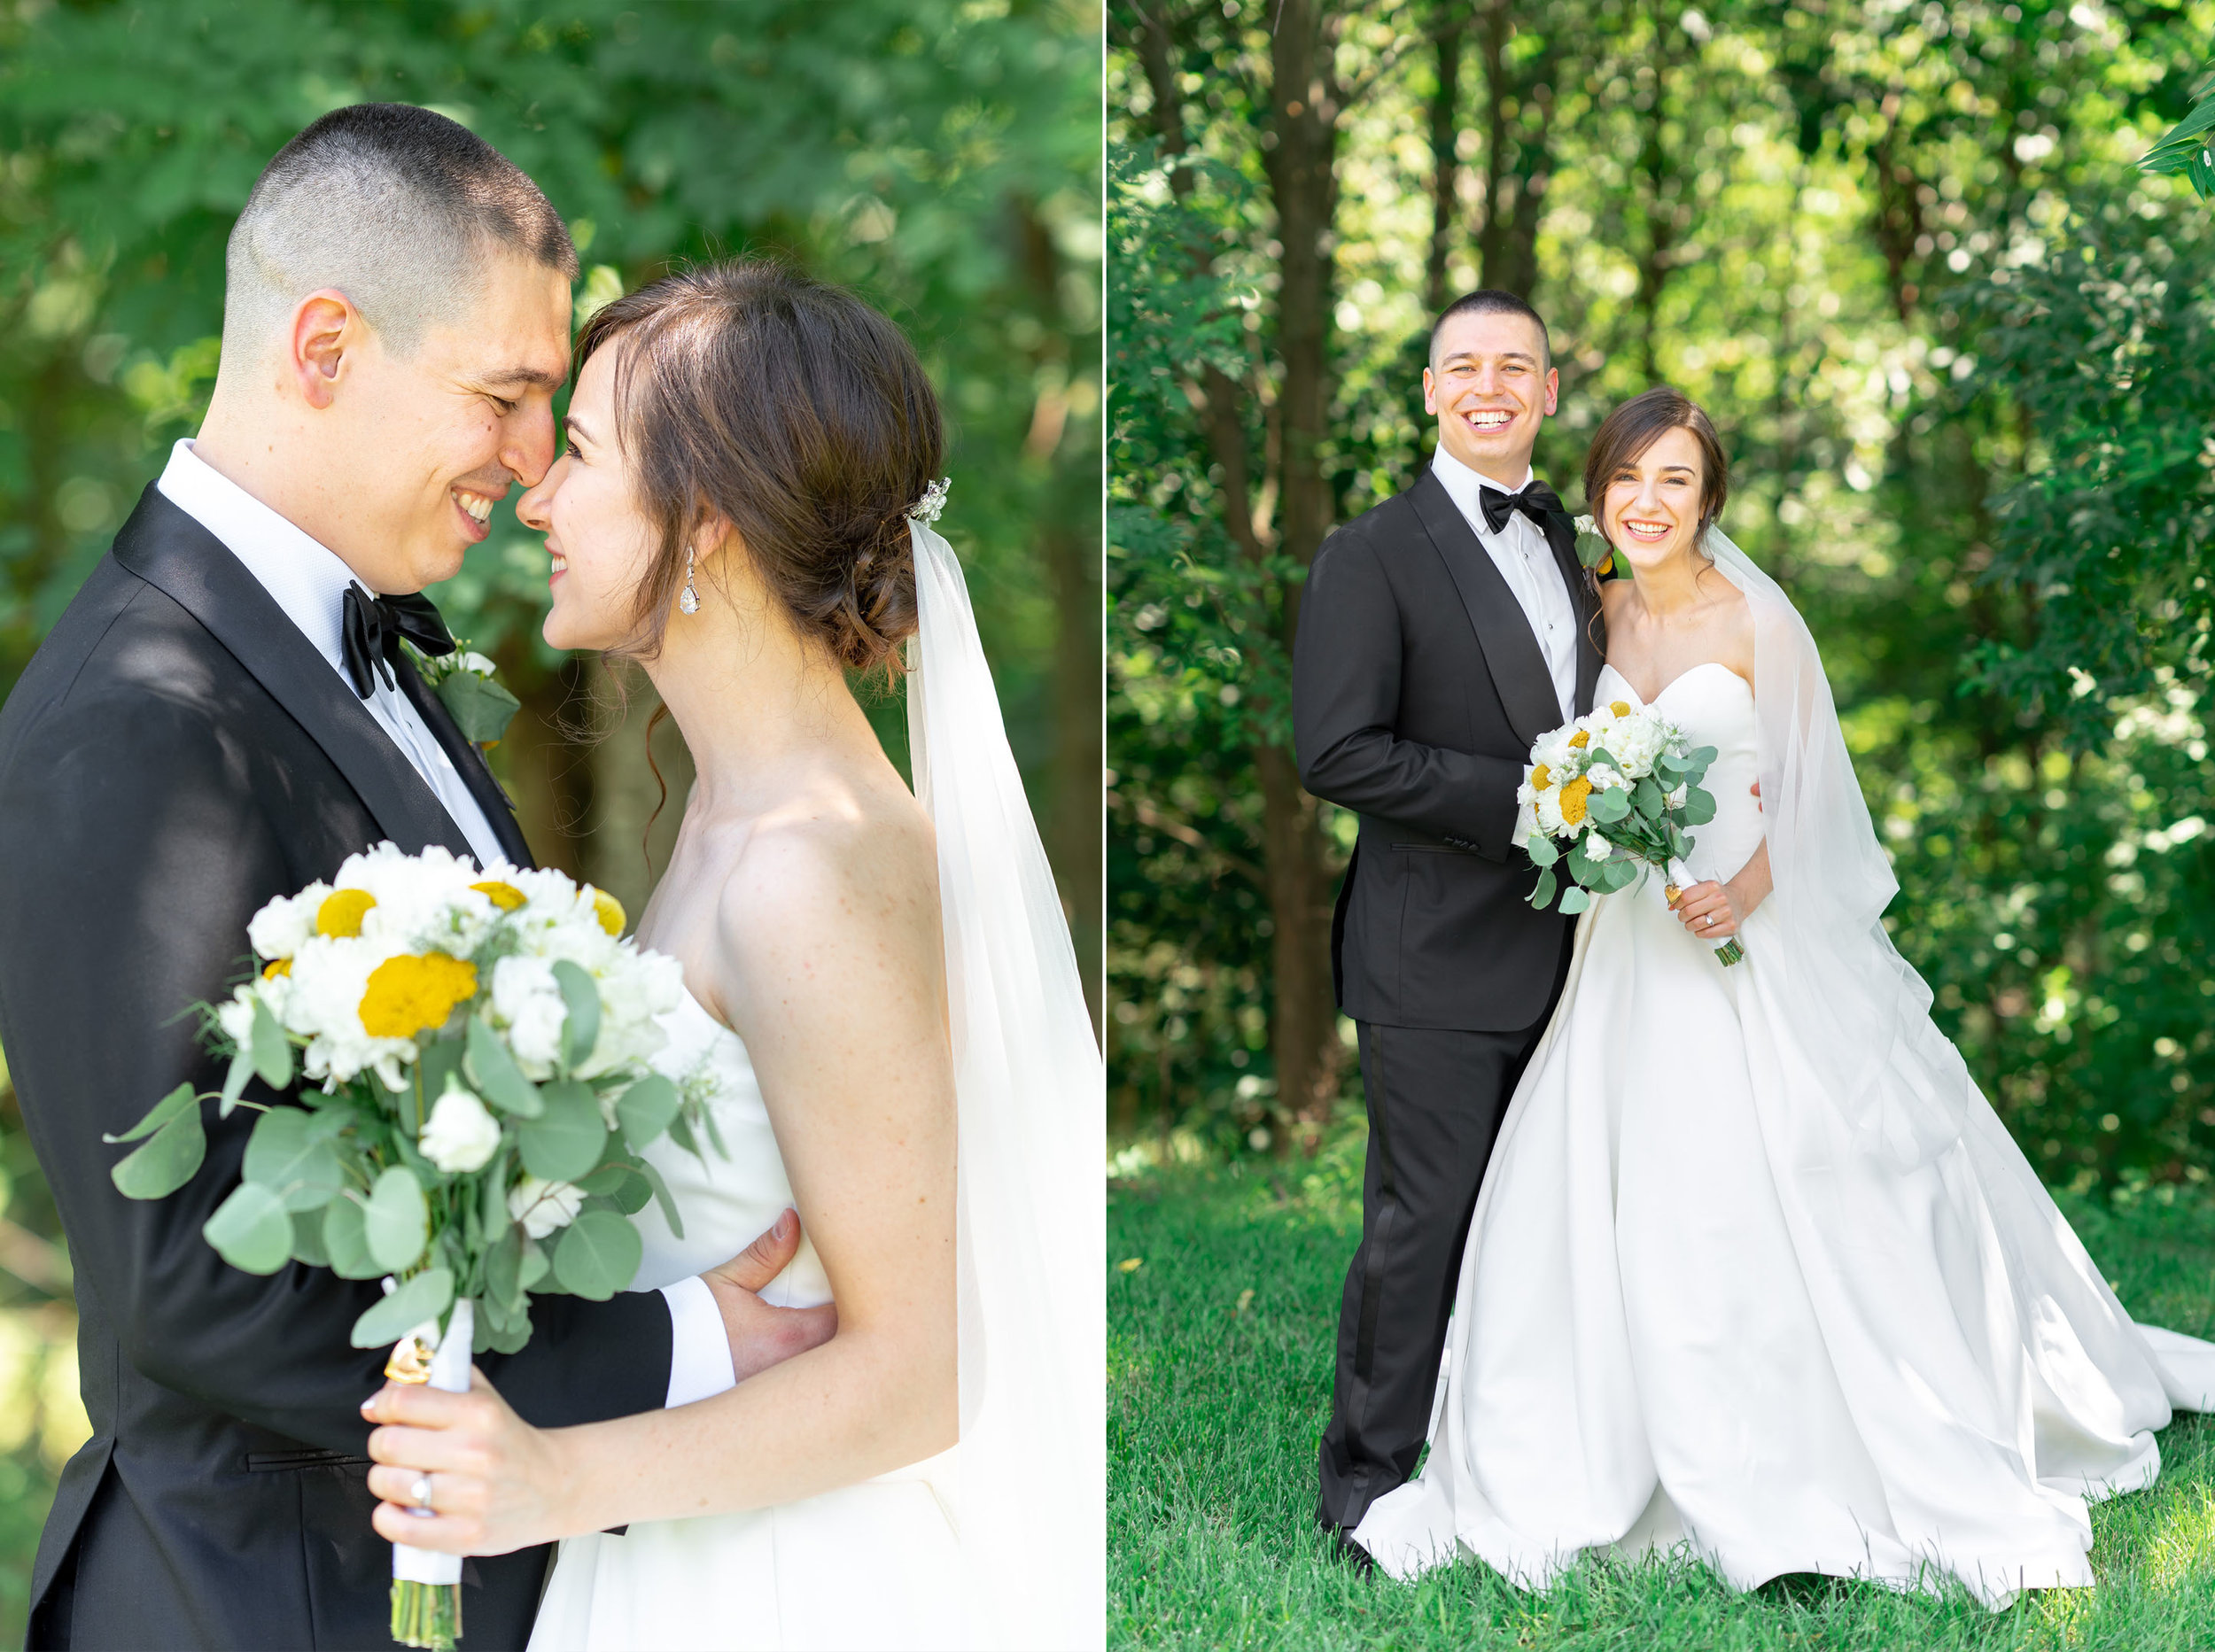 Wedding portraits under the trees in Luray at Westcott House wedding